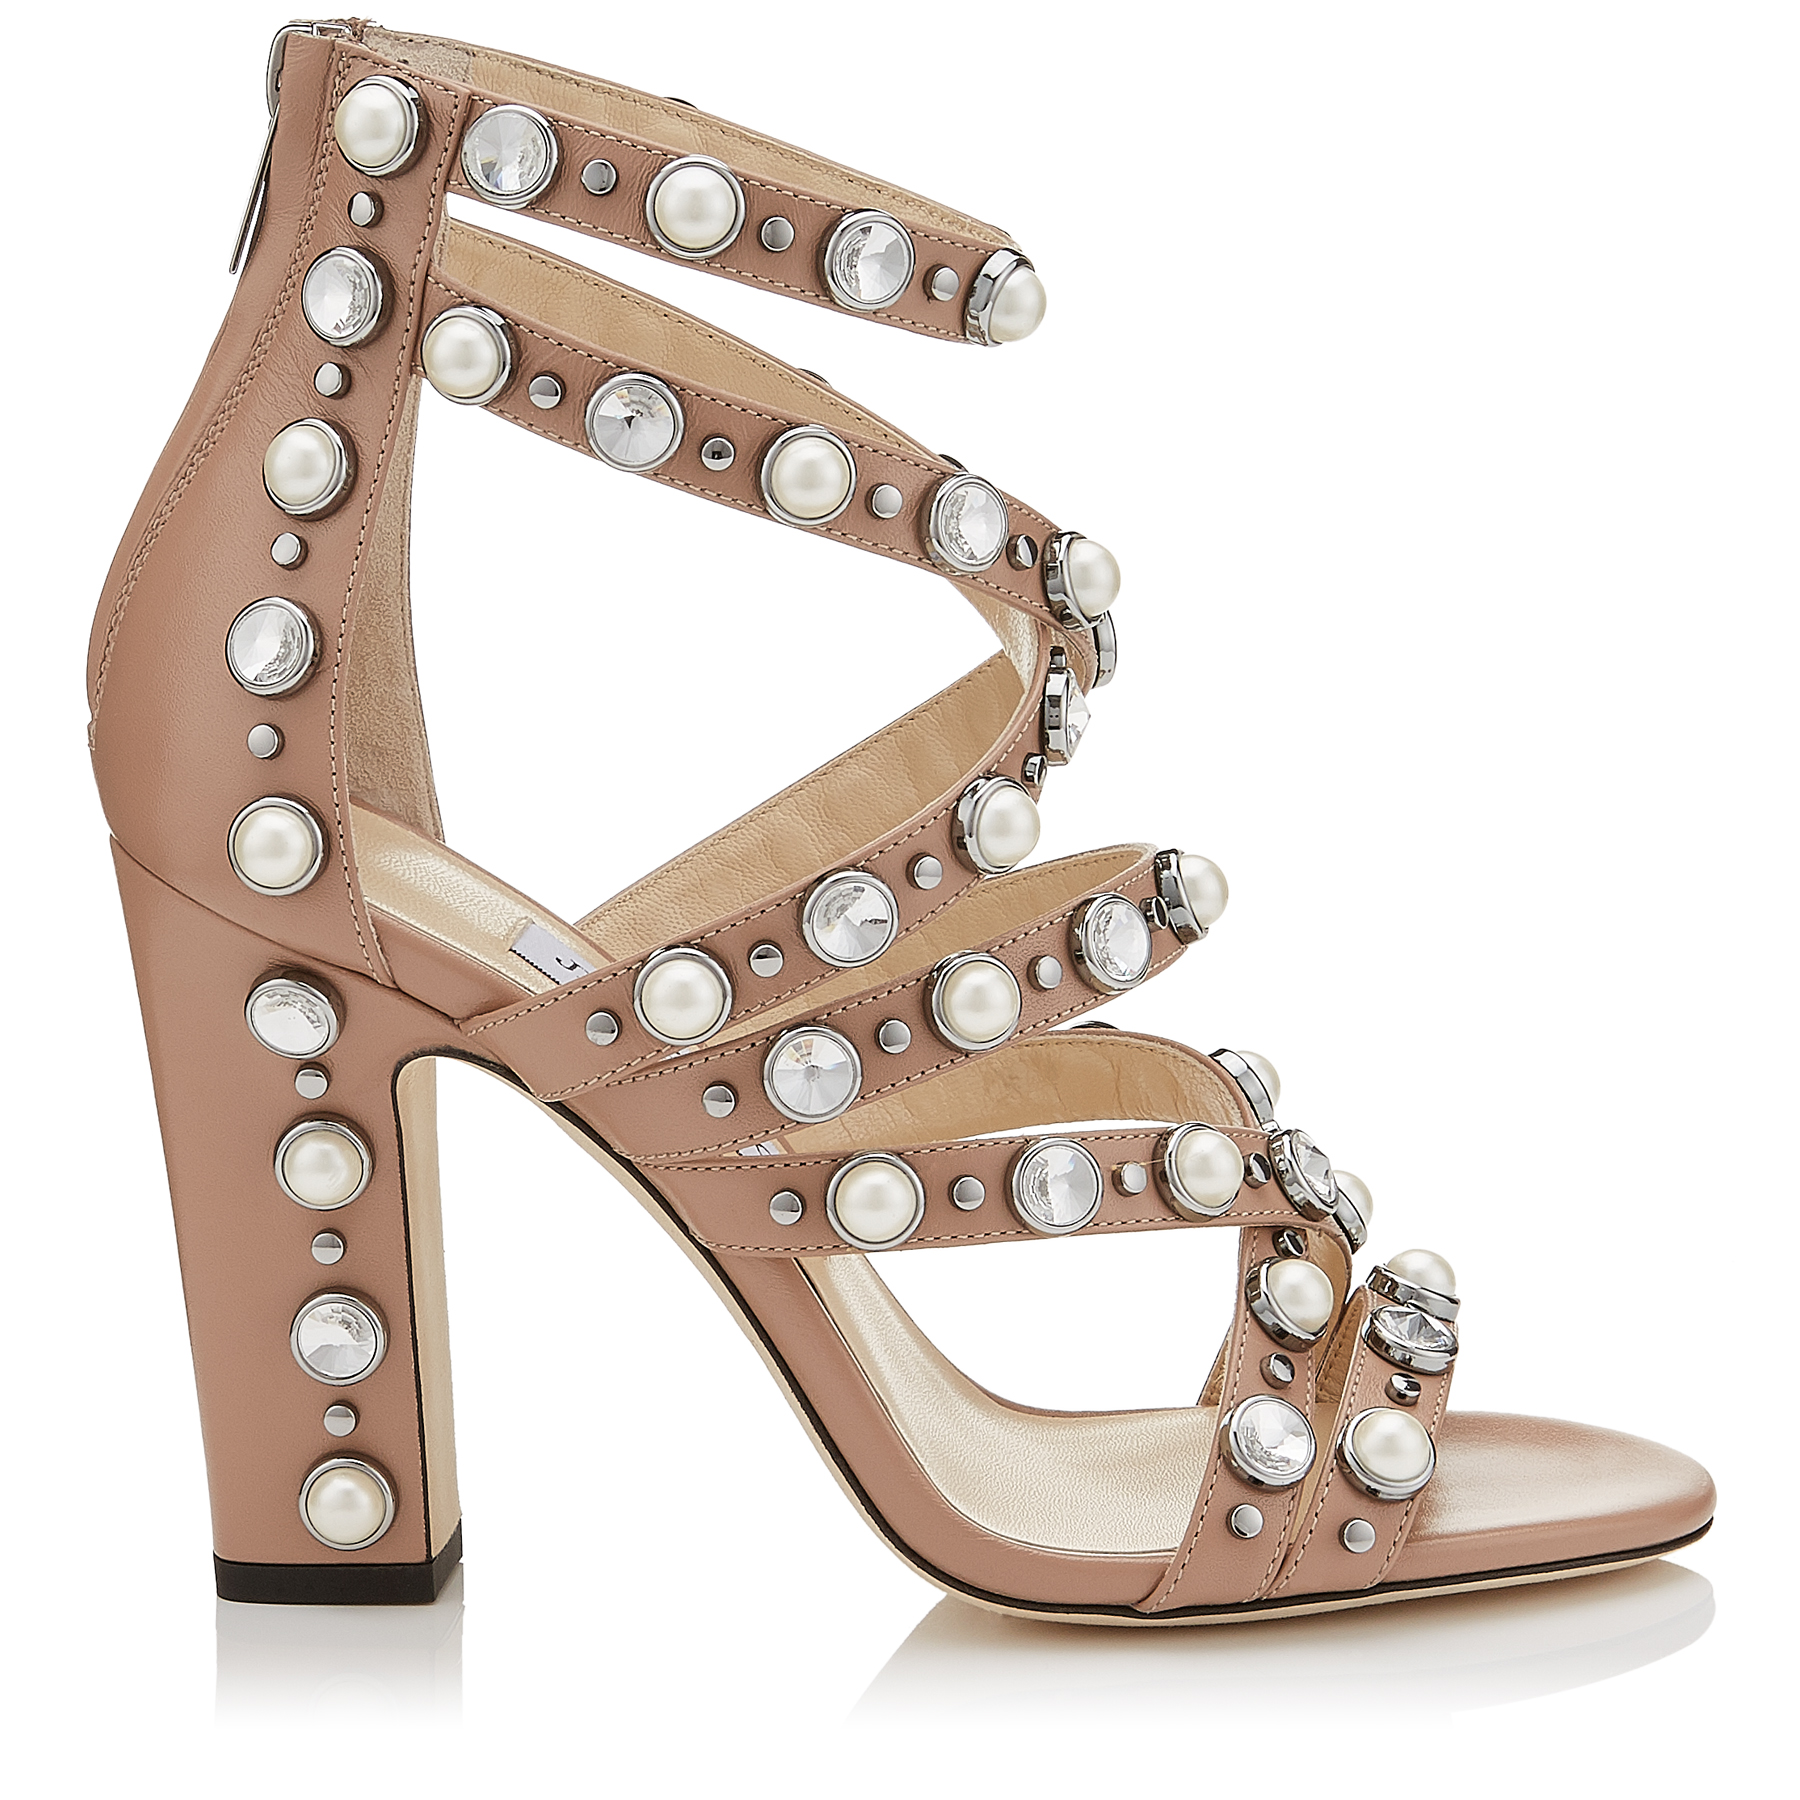 MOORE 100 Ballet Pink Calf Leather Sandals with Beads and Crystals by Jimmy Choo